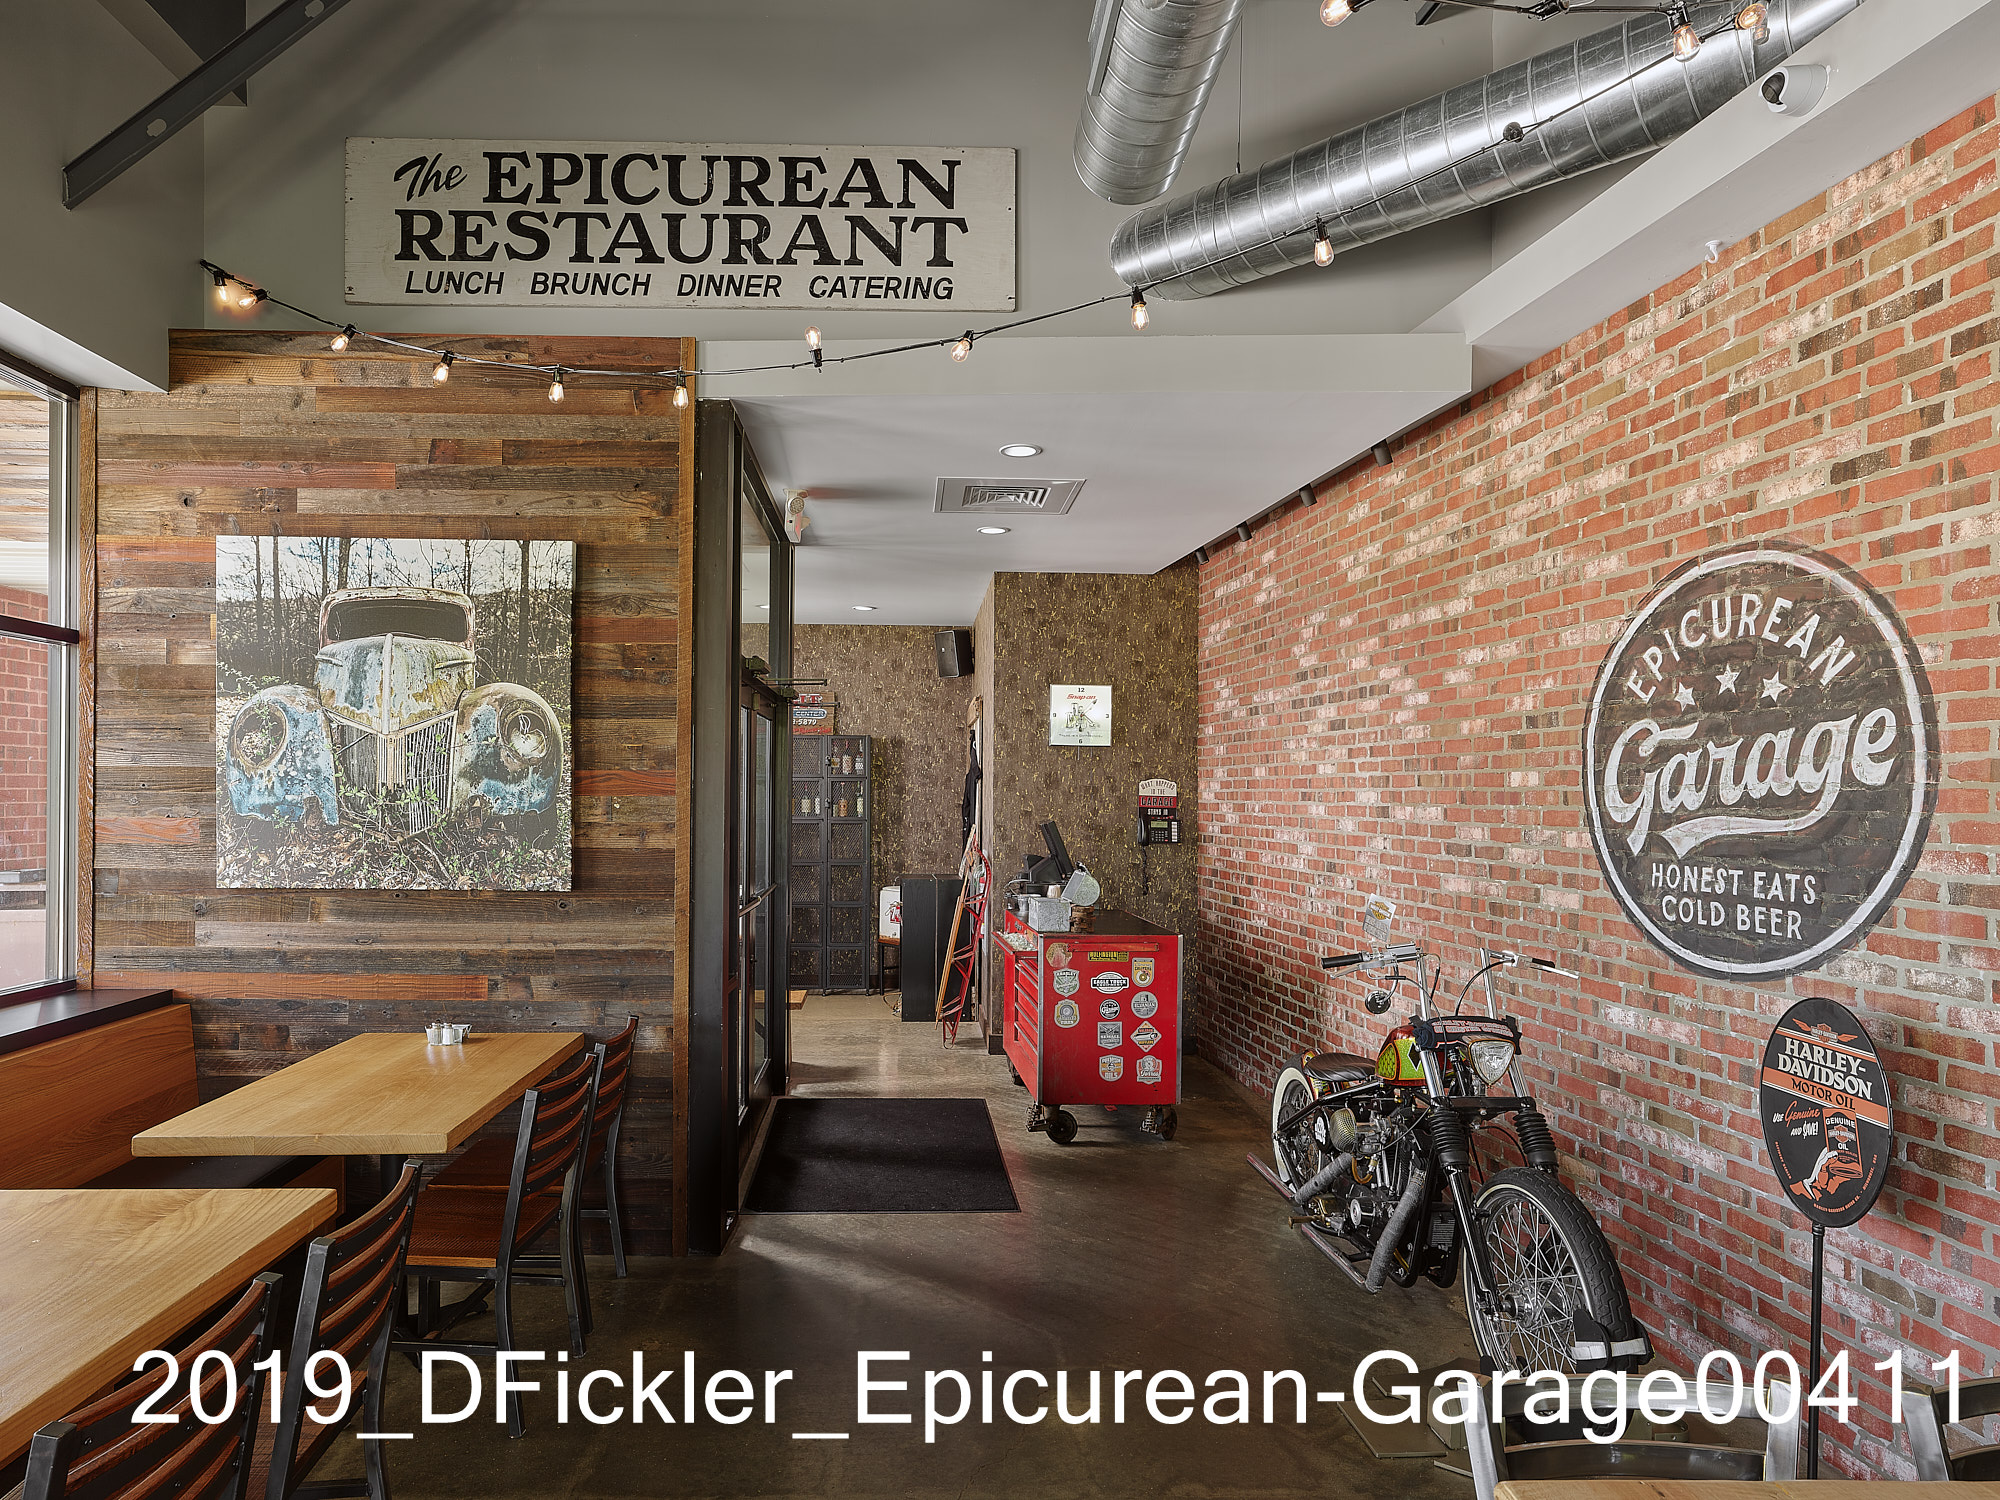 2019_DFickler_Epicurean-Garage00411.jpg